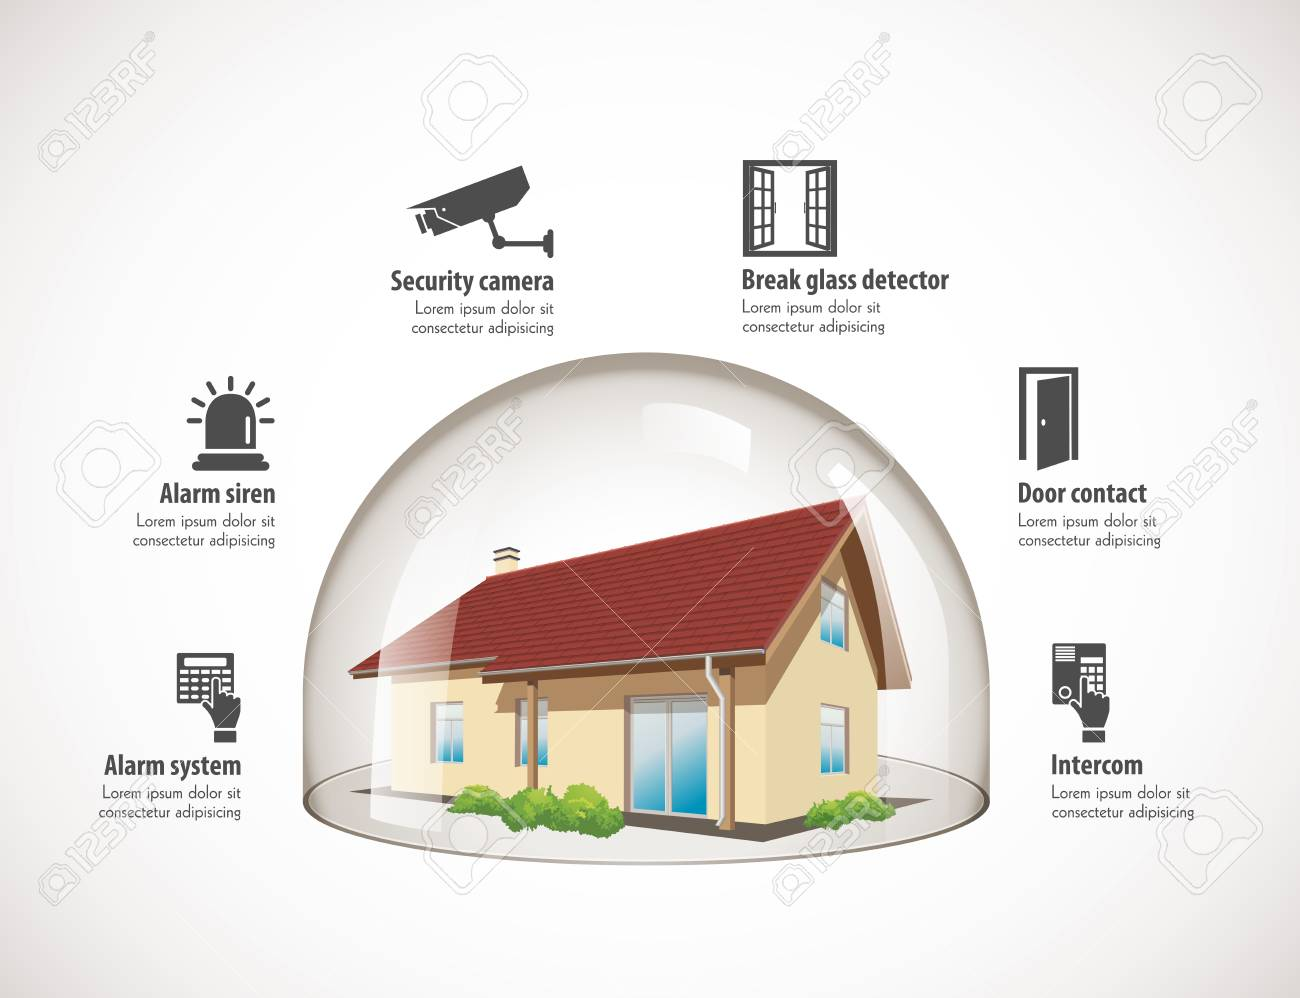 Glass dome - House protection concept - 82527510